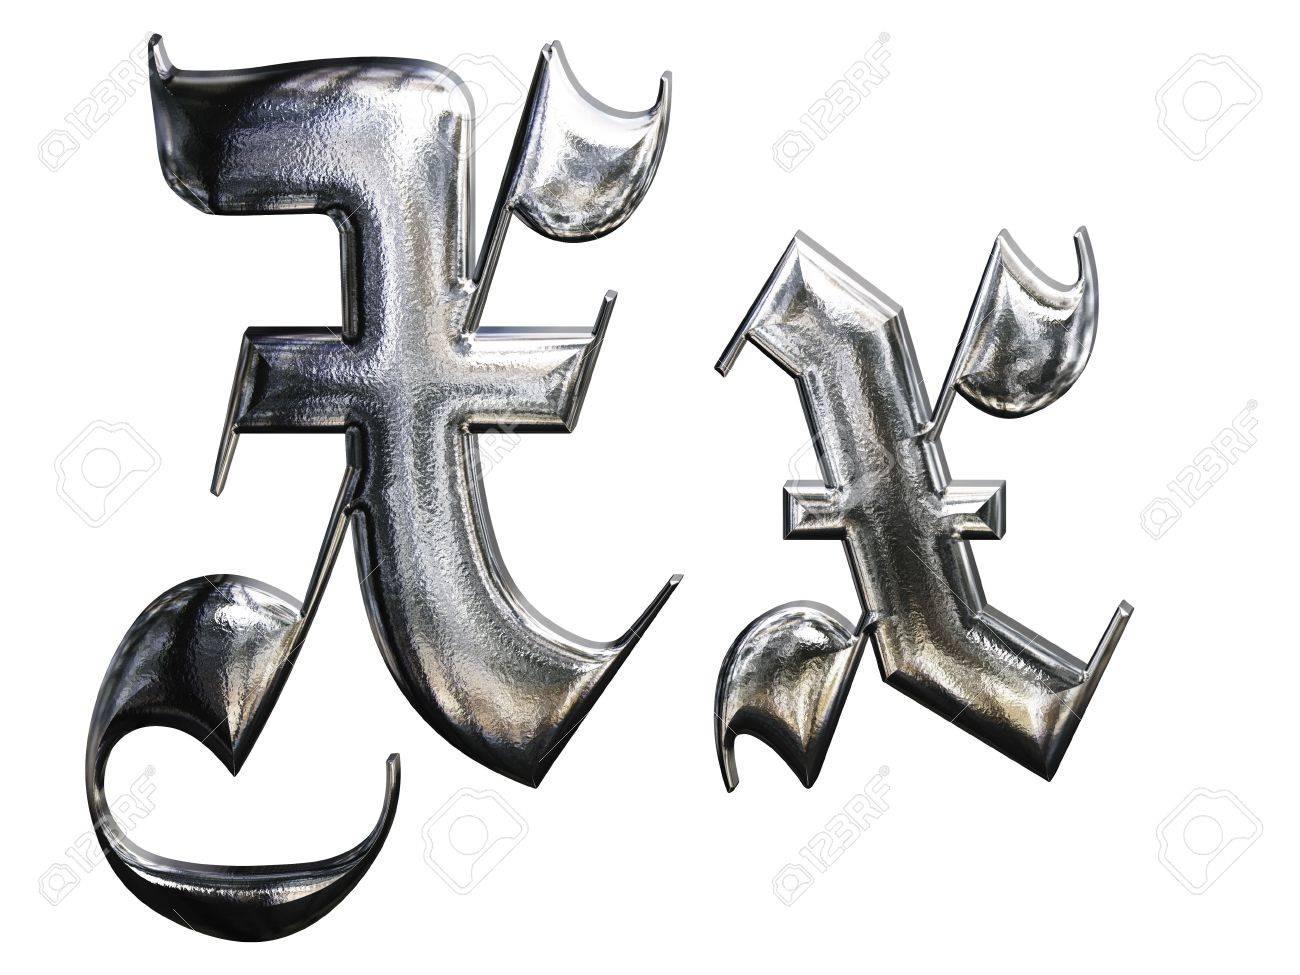 Metallic Patterned Letter Of German Gothic Alphabet Font X Stock Photo